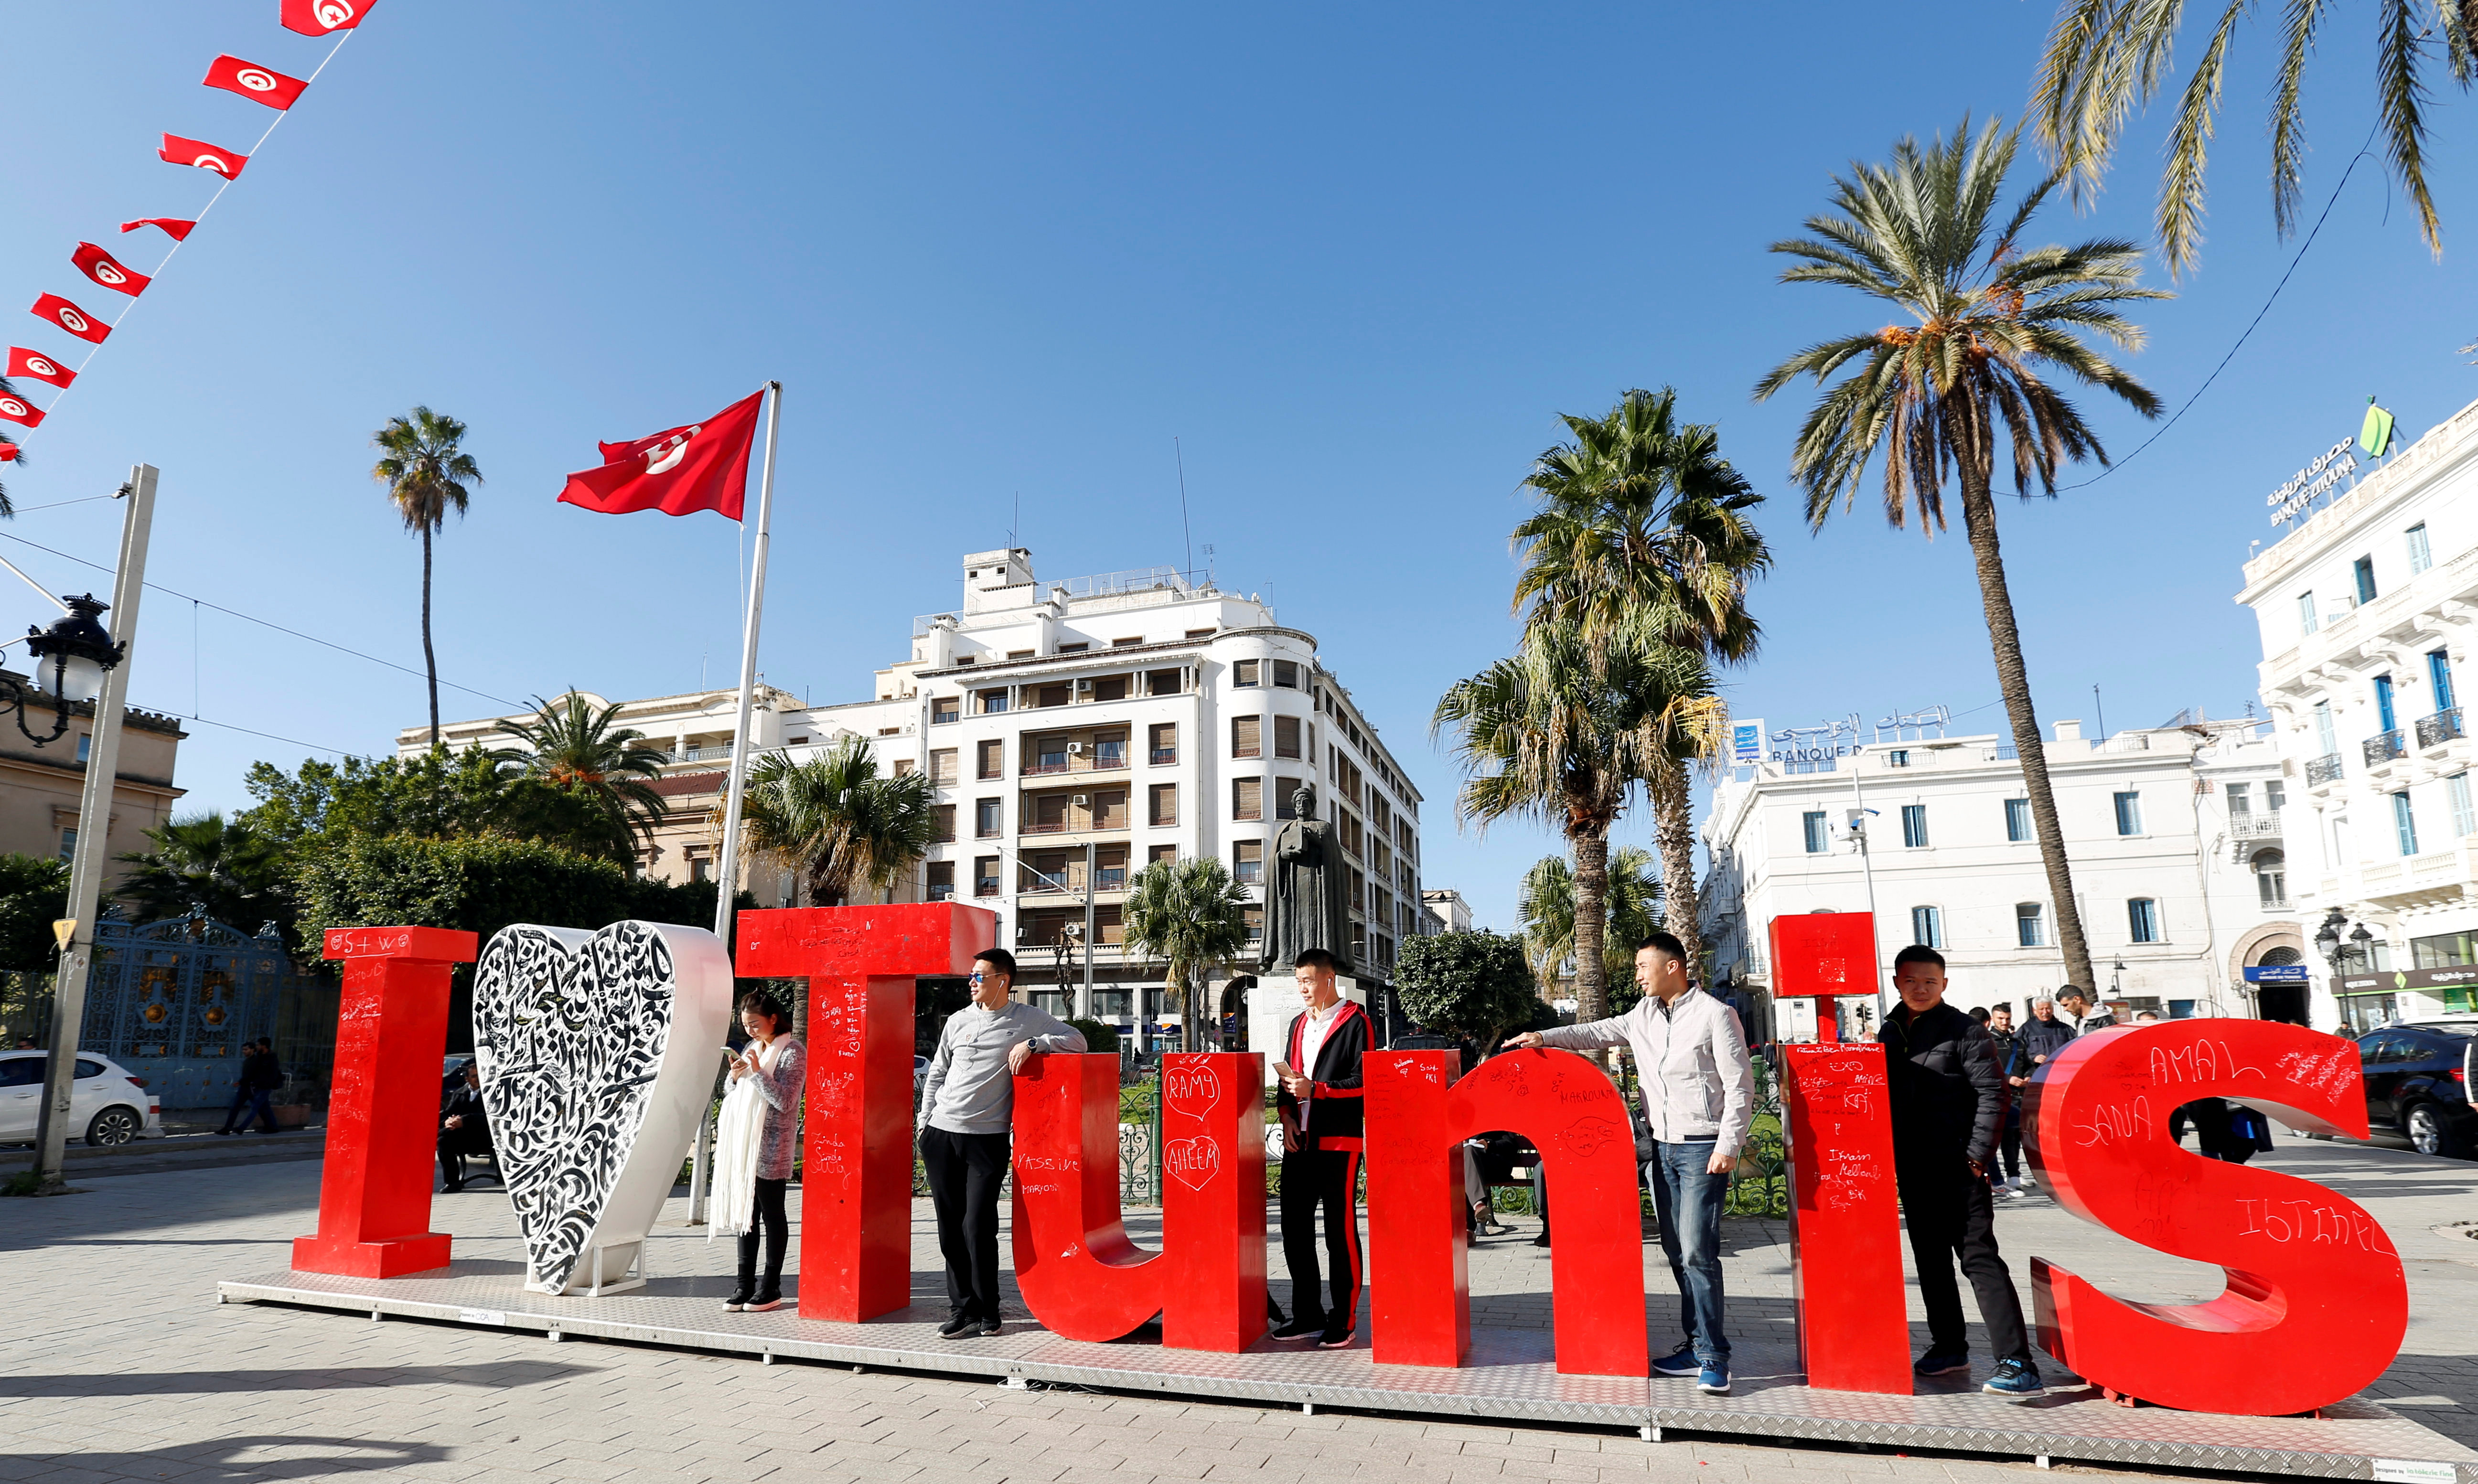 Tunisia Country Political Map, Tunisias Startup Act Could Show Other African Governments How To Support Tech Ecosystems, Tunisia Country Political Map